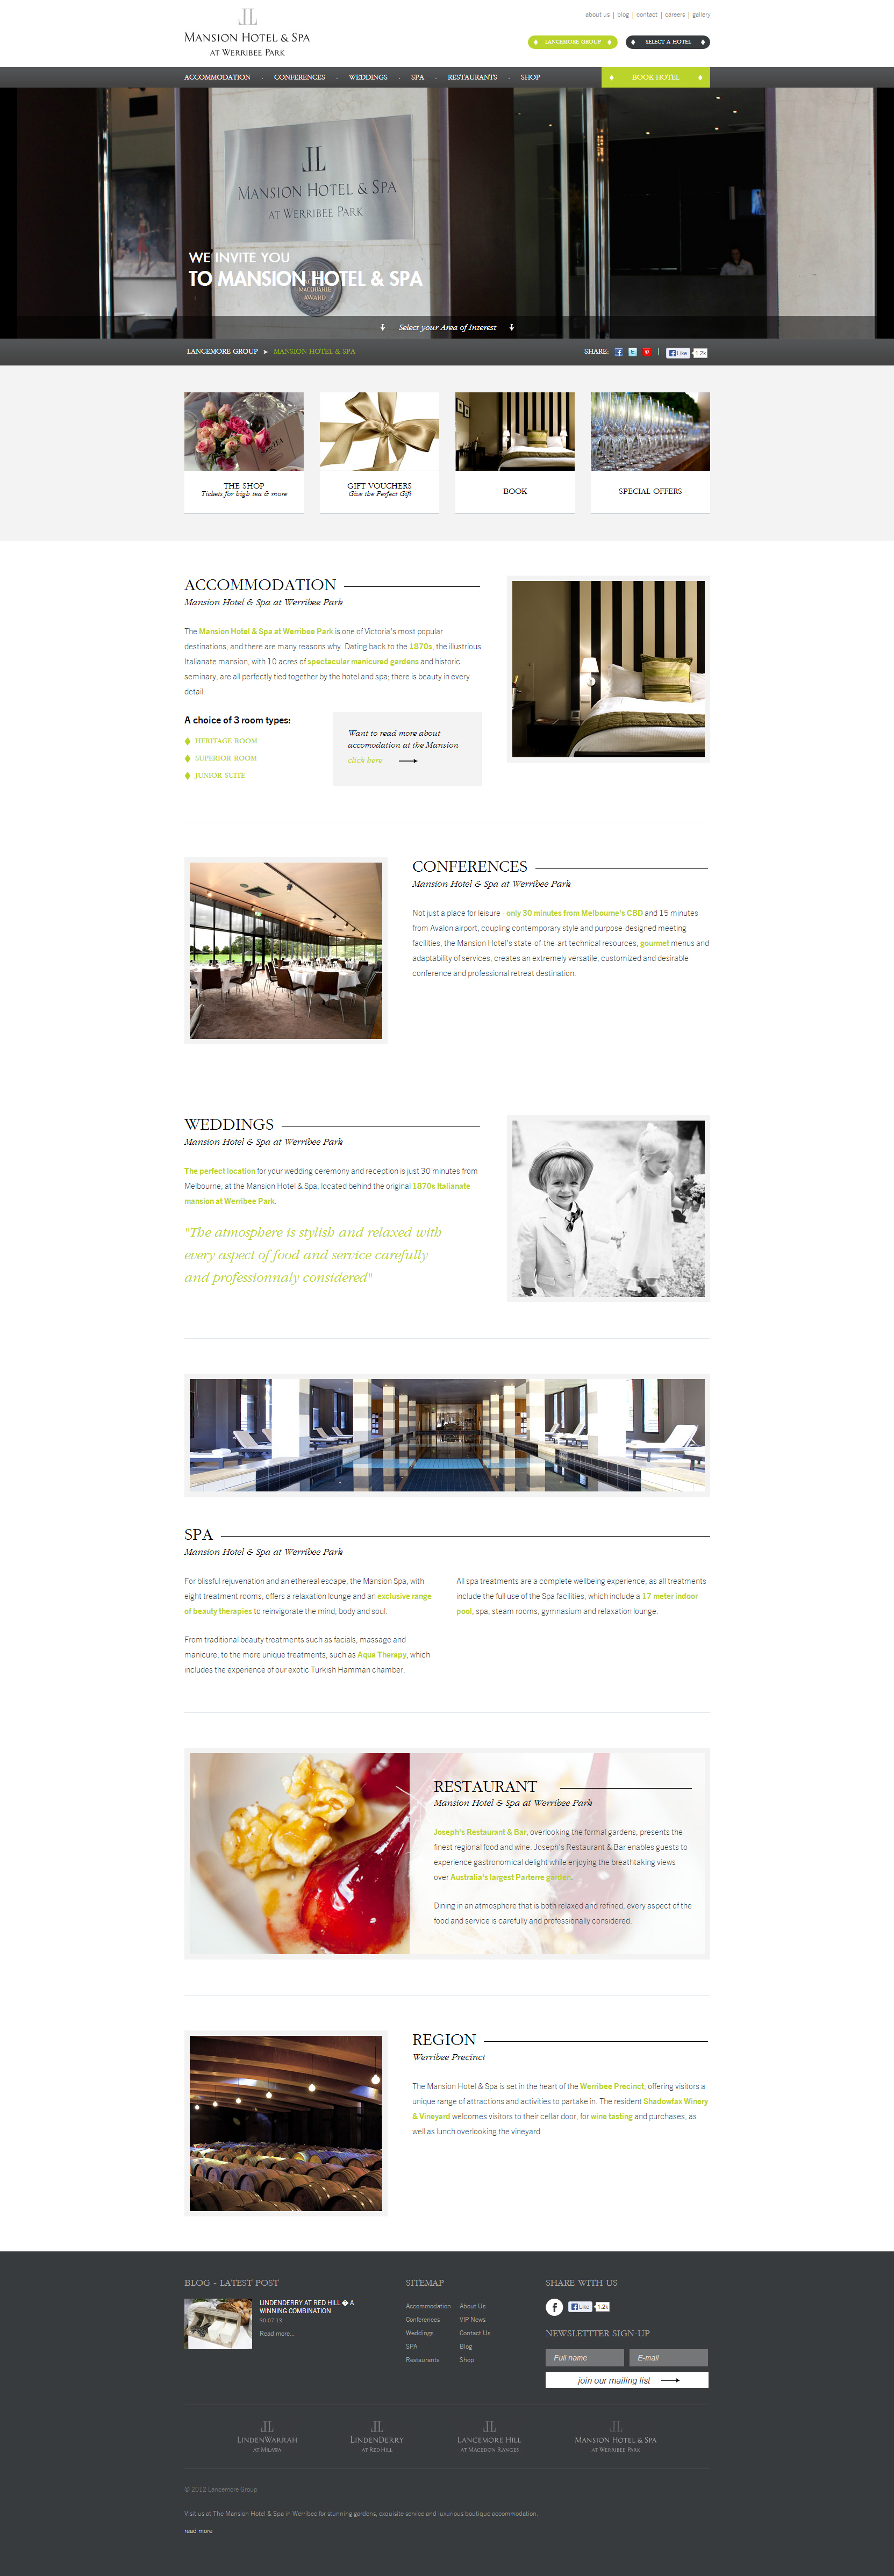 Website Inspiration - Mansion Hotel